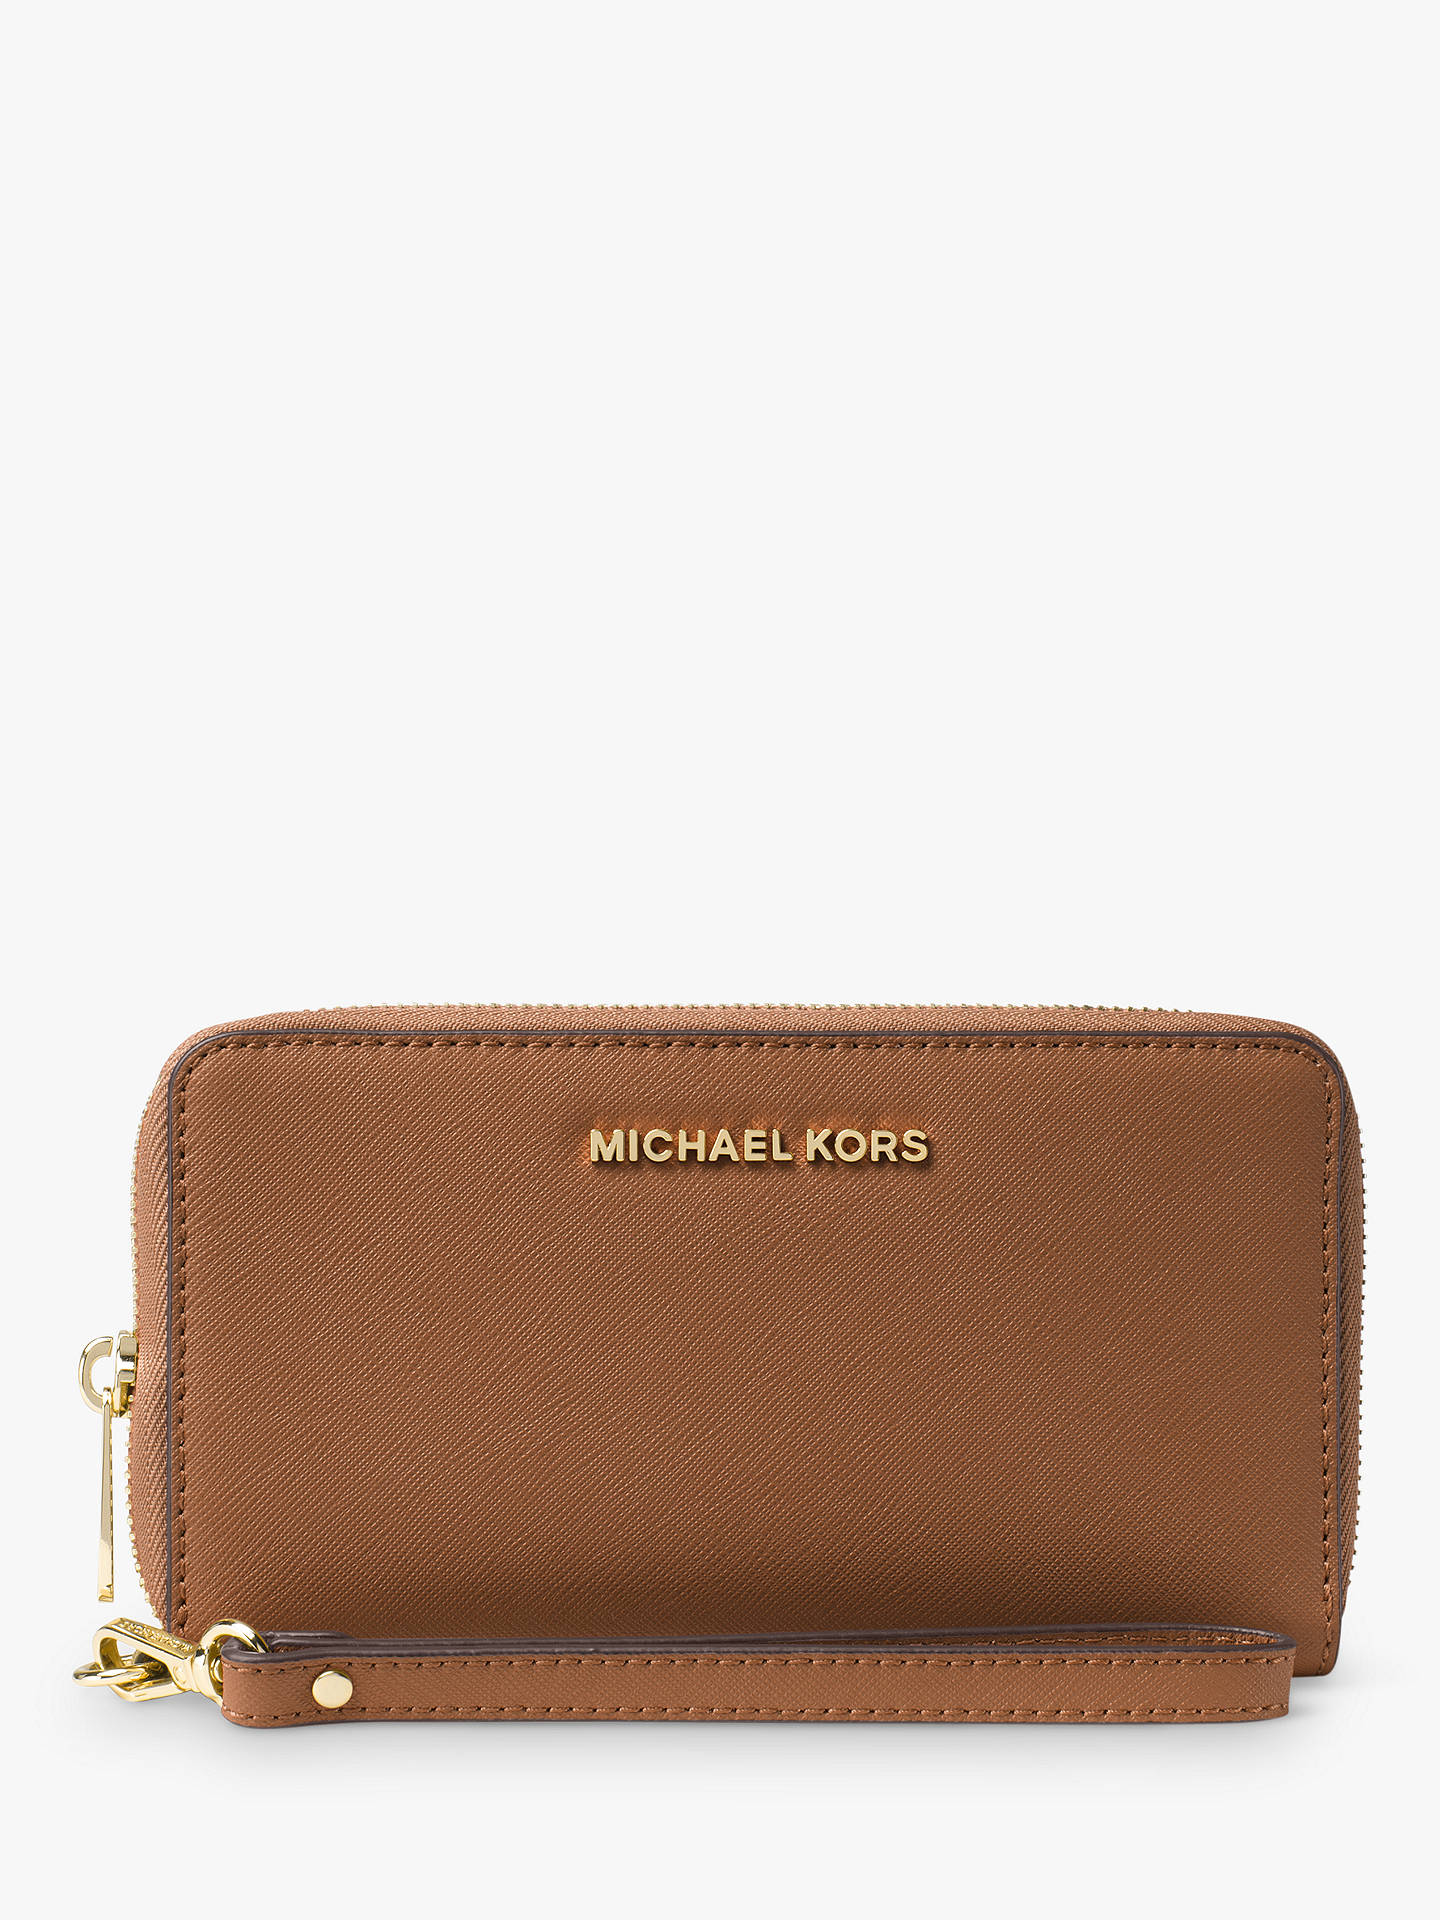 43cca0f7630f Buy MICHAEL Michael Kors Jet Set Large Leather Travel Phone Case Purse,  Luggage Online at ...